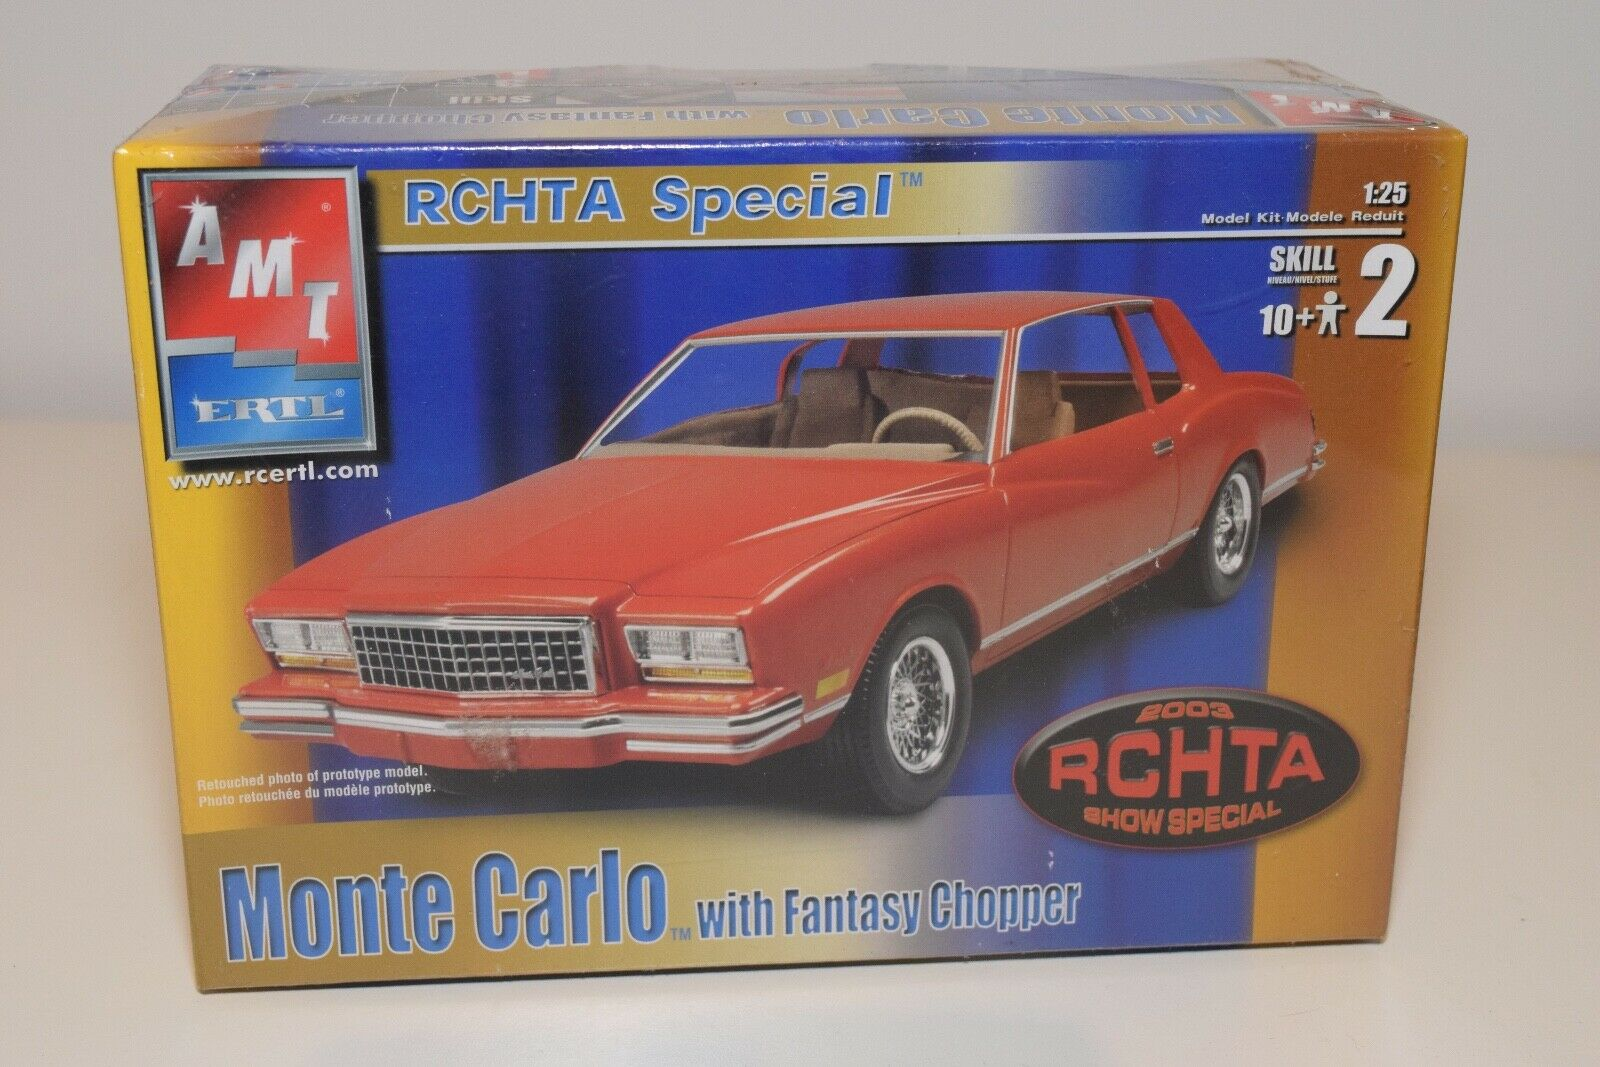 HH 1 25 AMT KIT CHEVROLET CHEVY MONTE CARLO RCHTA SHOW 2003 MINT BOXED SEALED 2